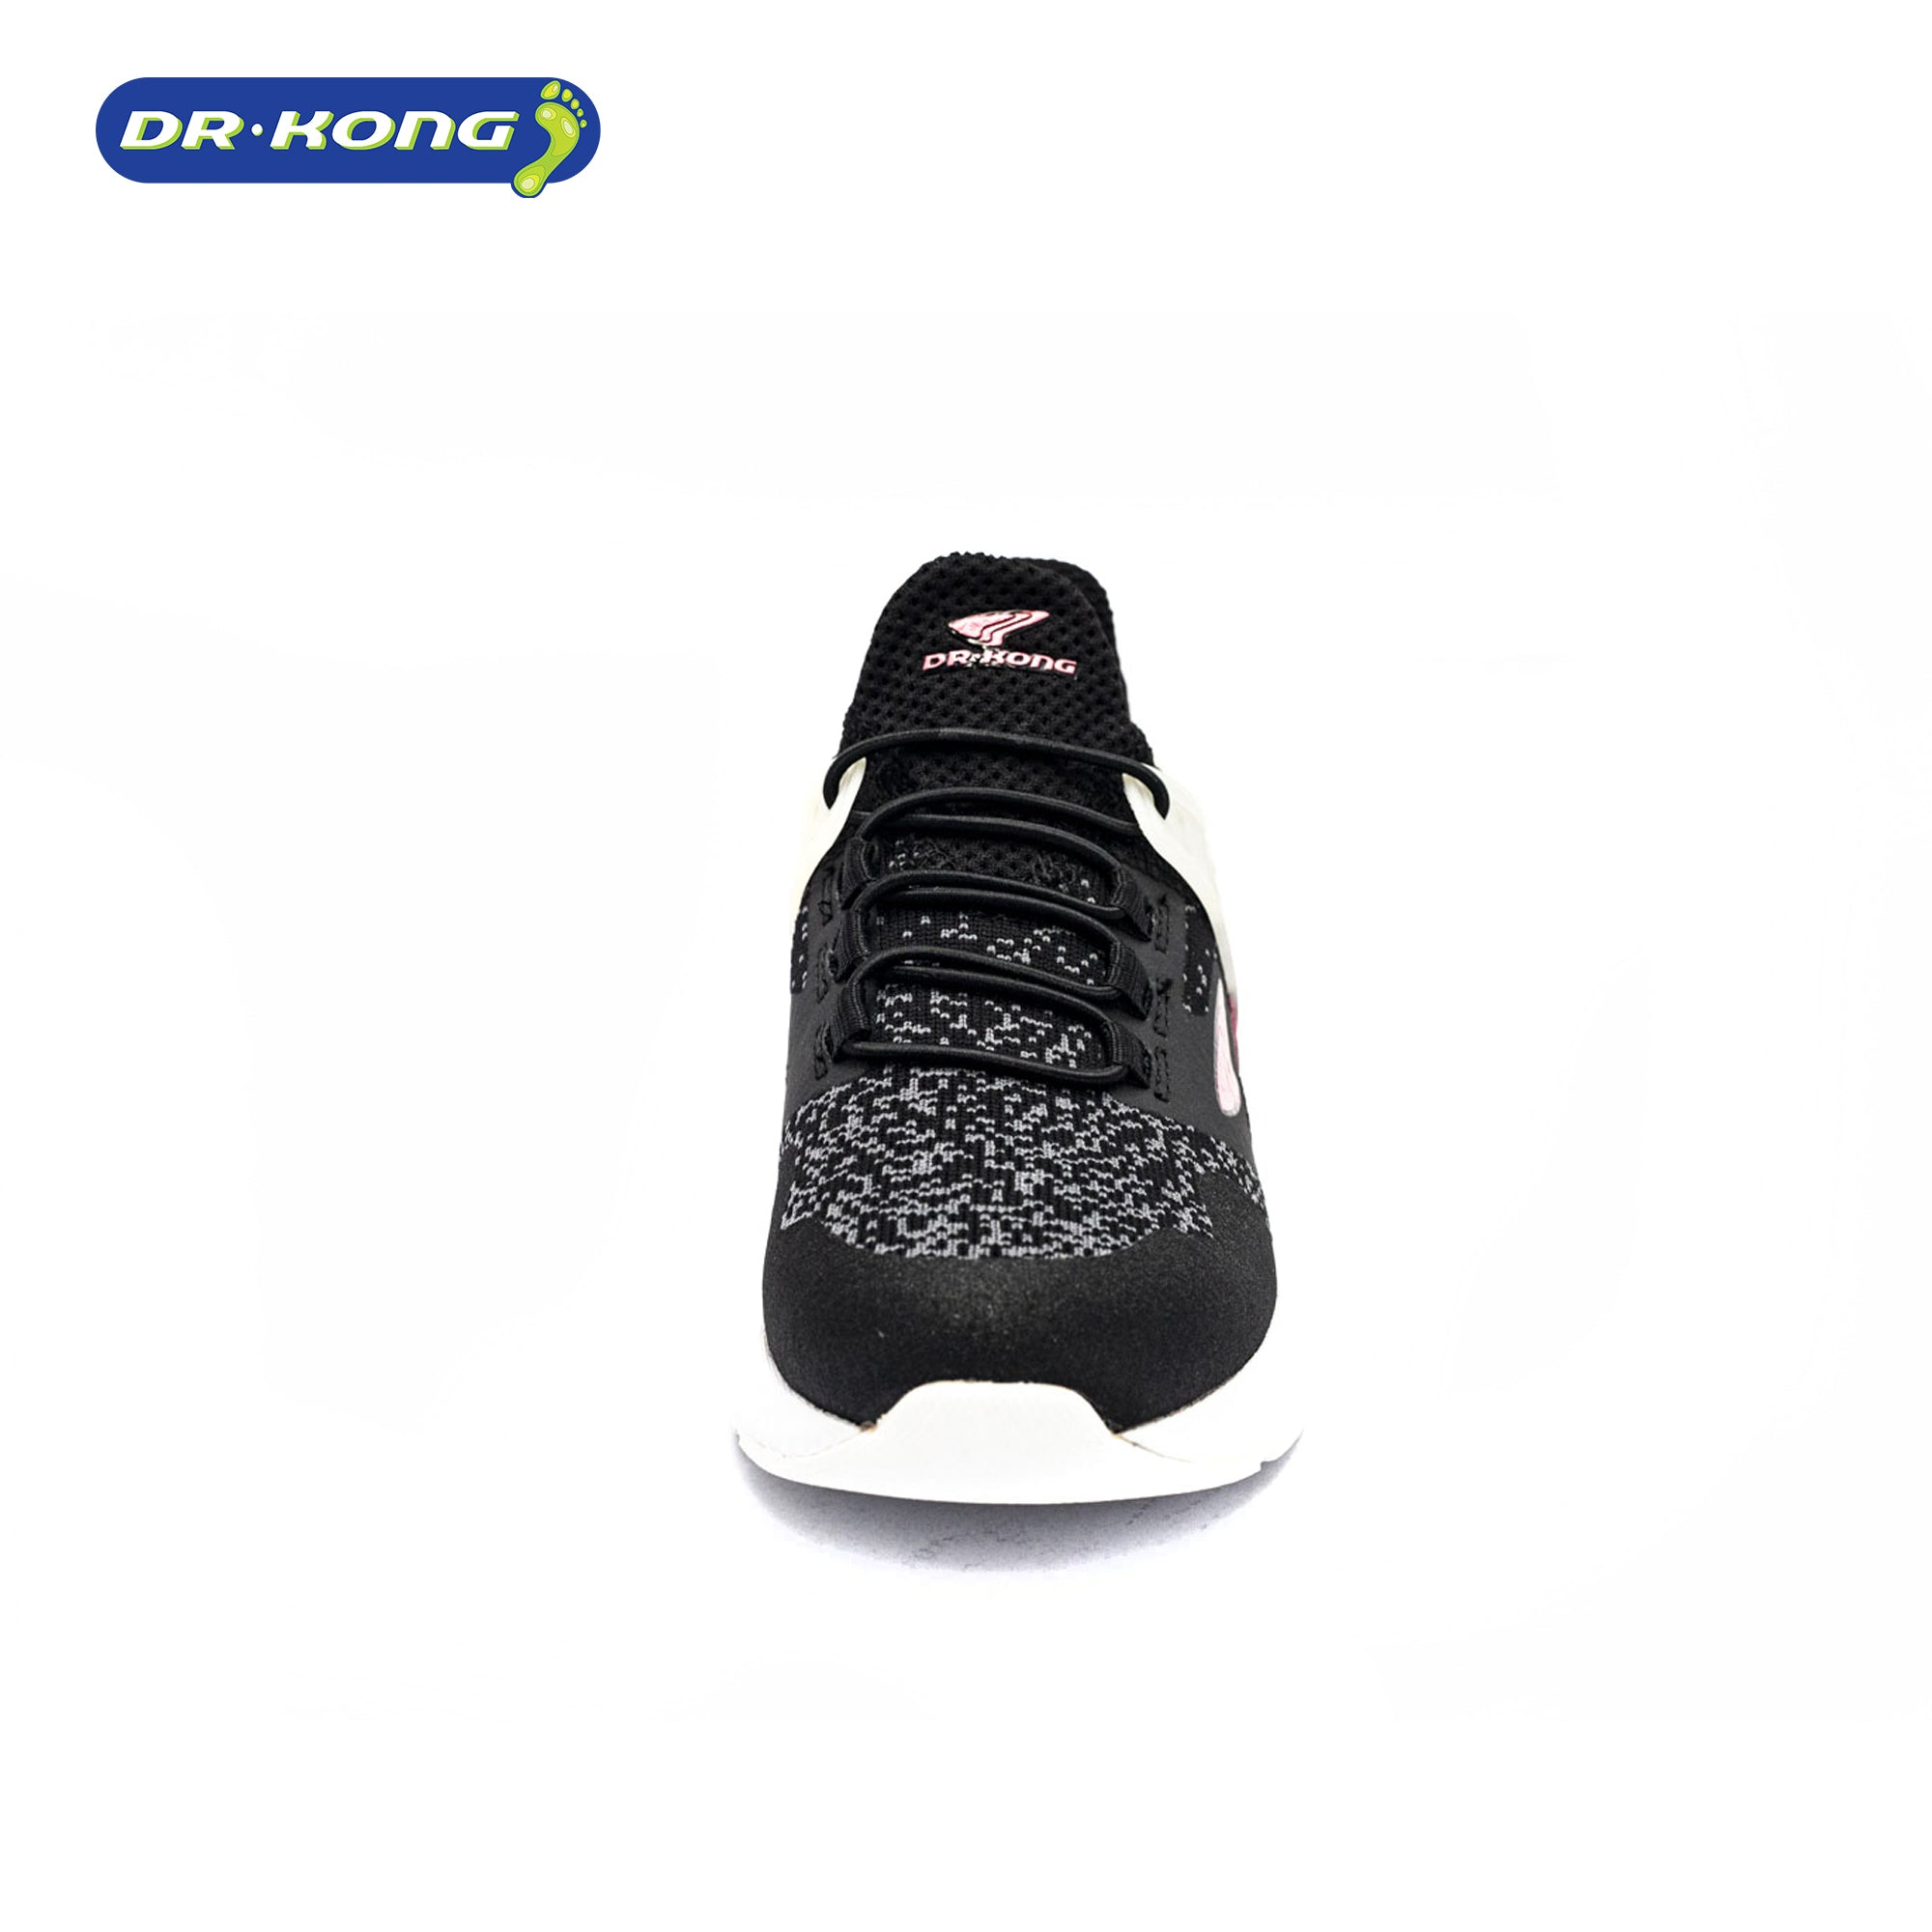 Dr. Kong Healthy Childrens Sneakers (Black Pink) c1000192